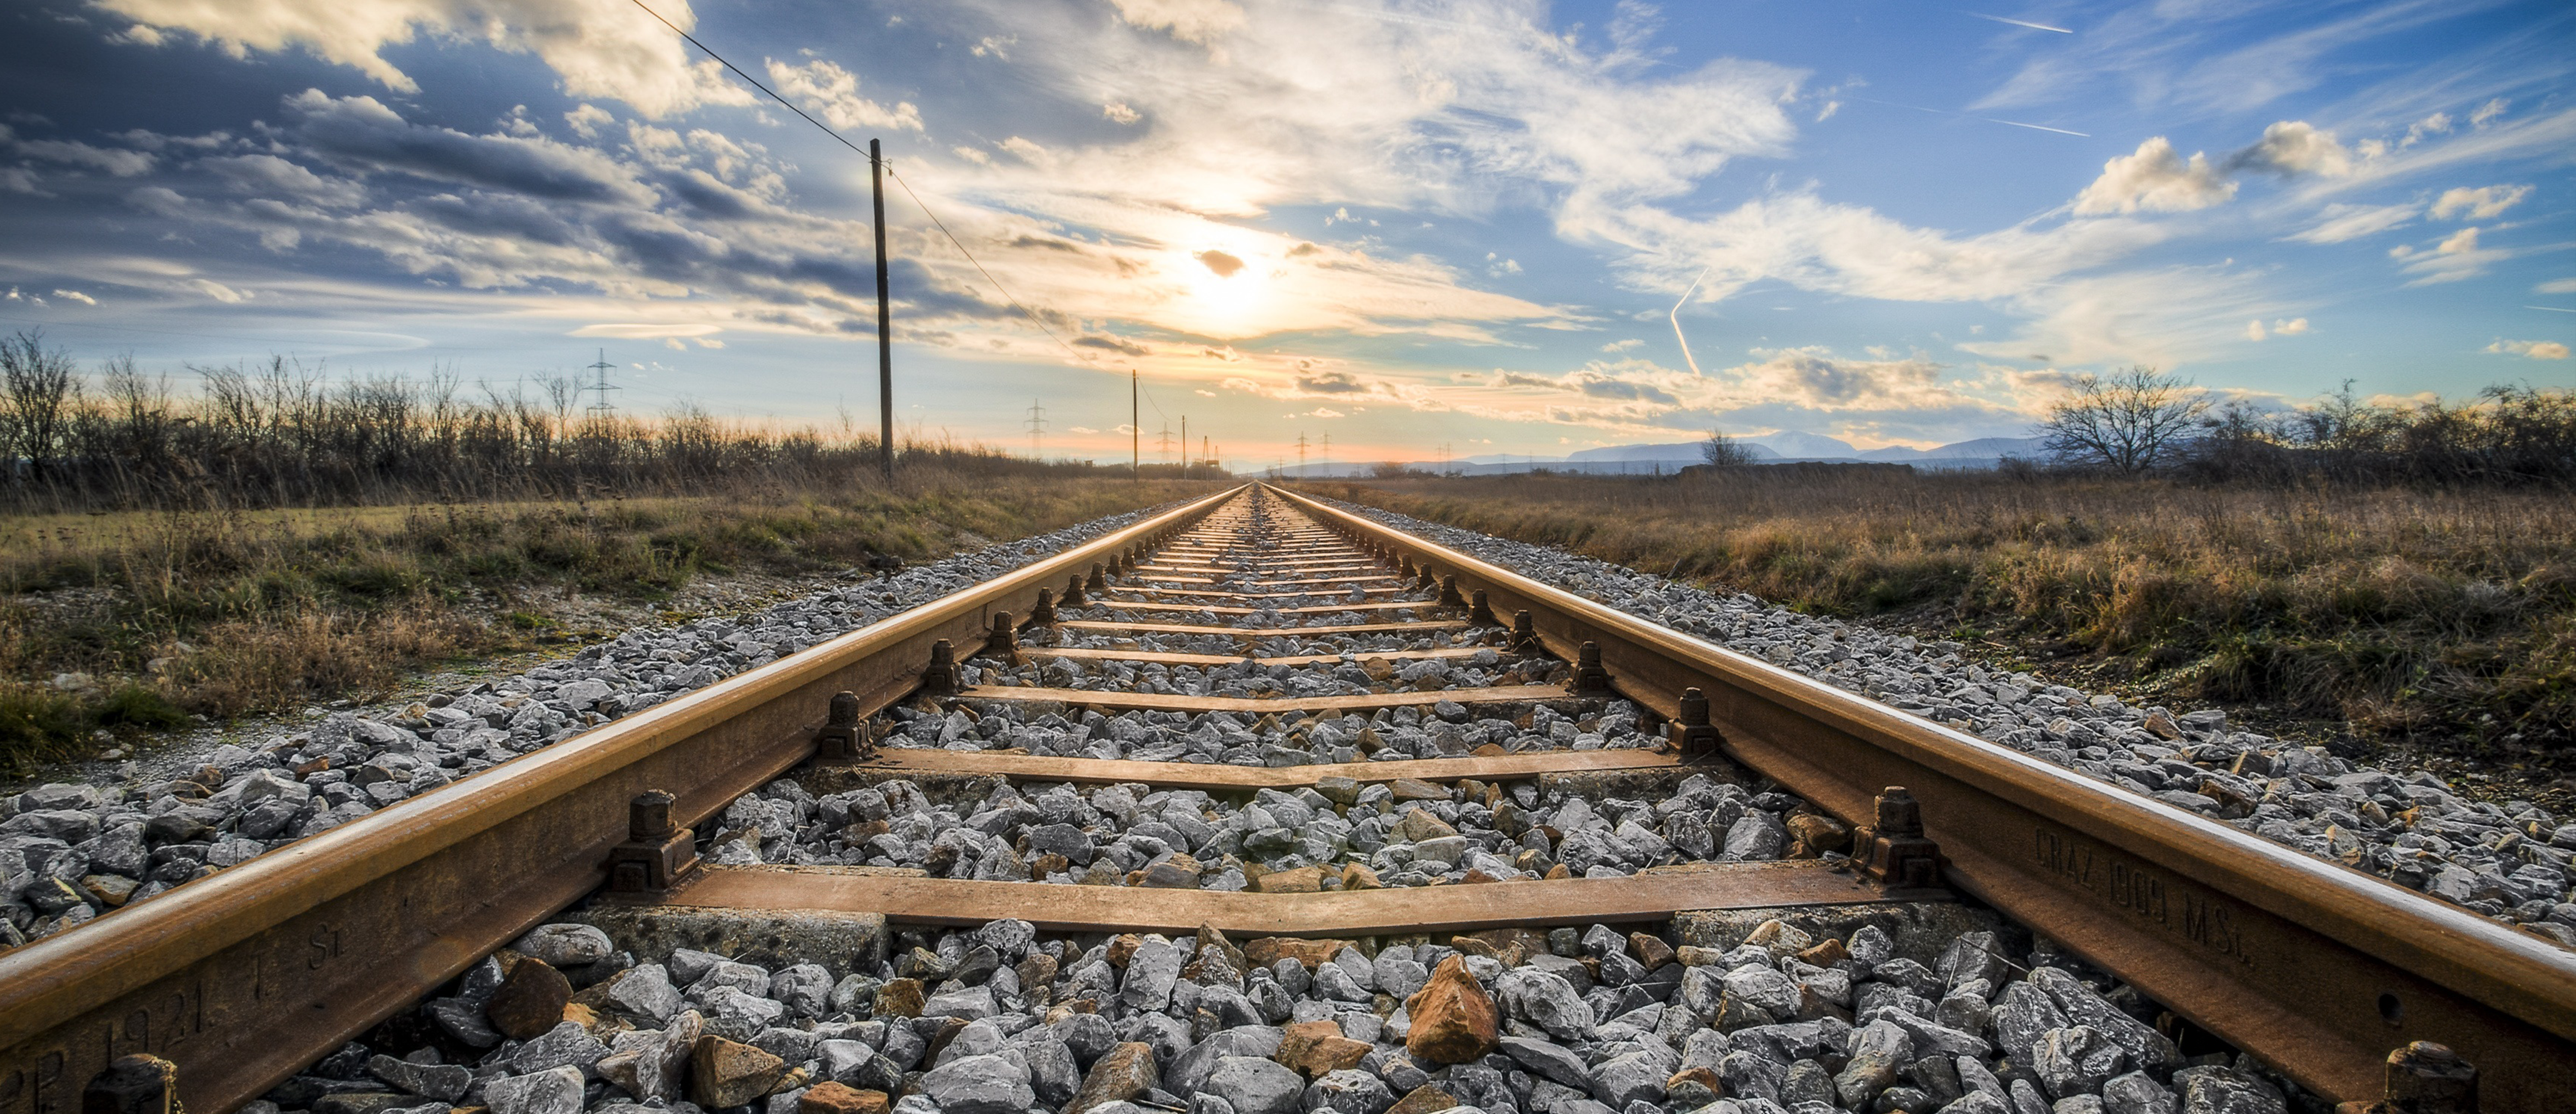 Weatherproof Cameras and Enclosures for the Rail Industry